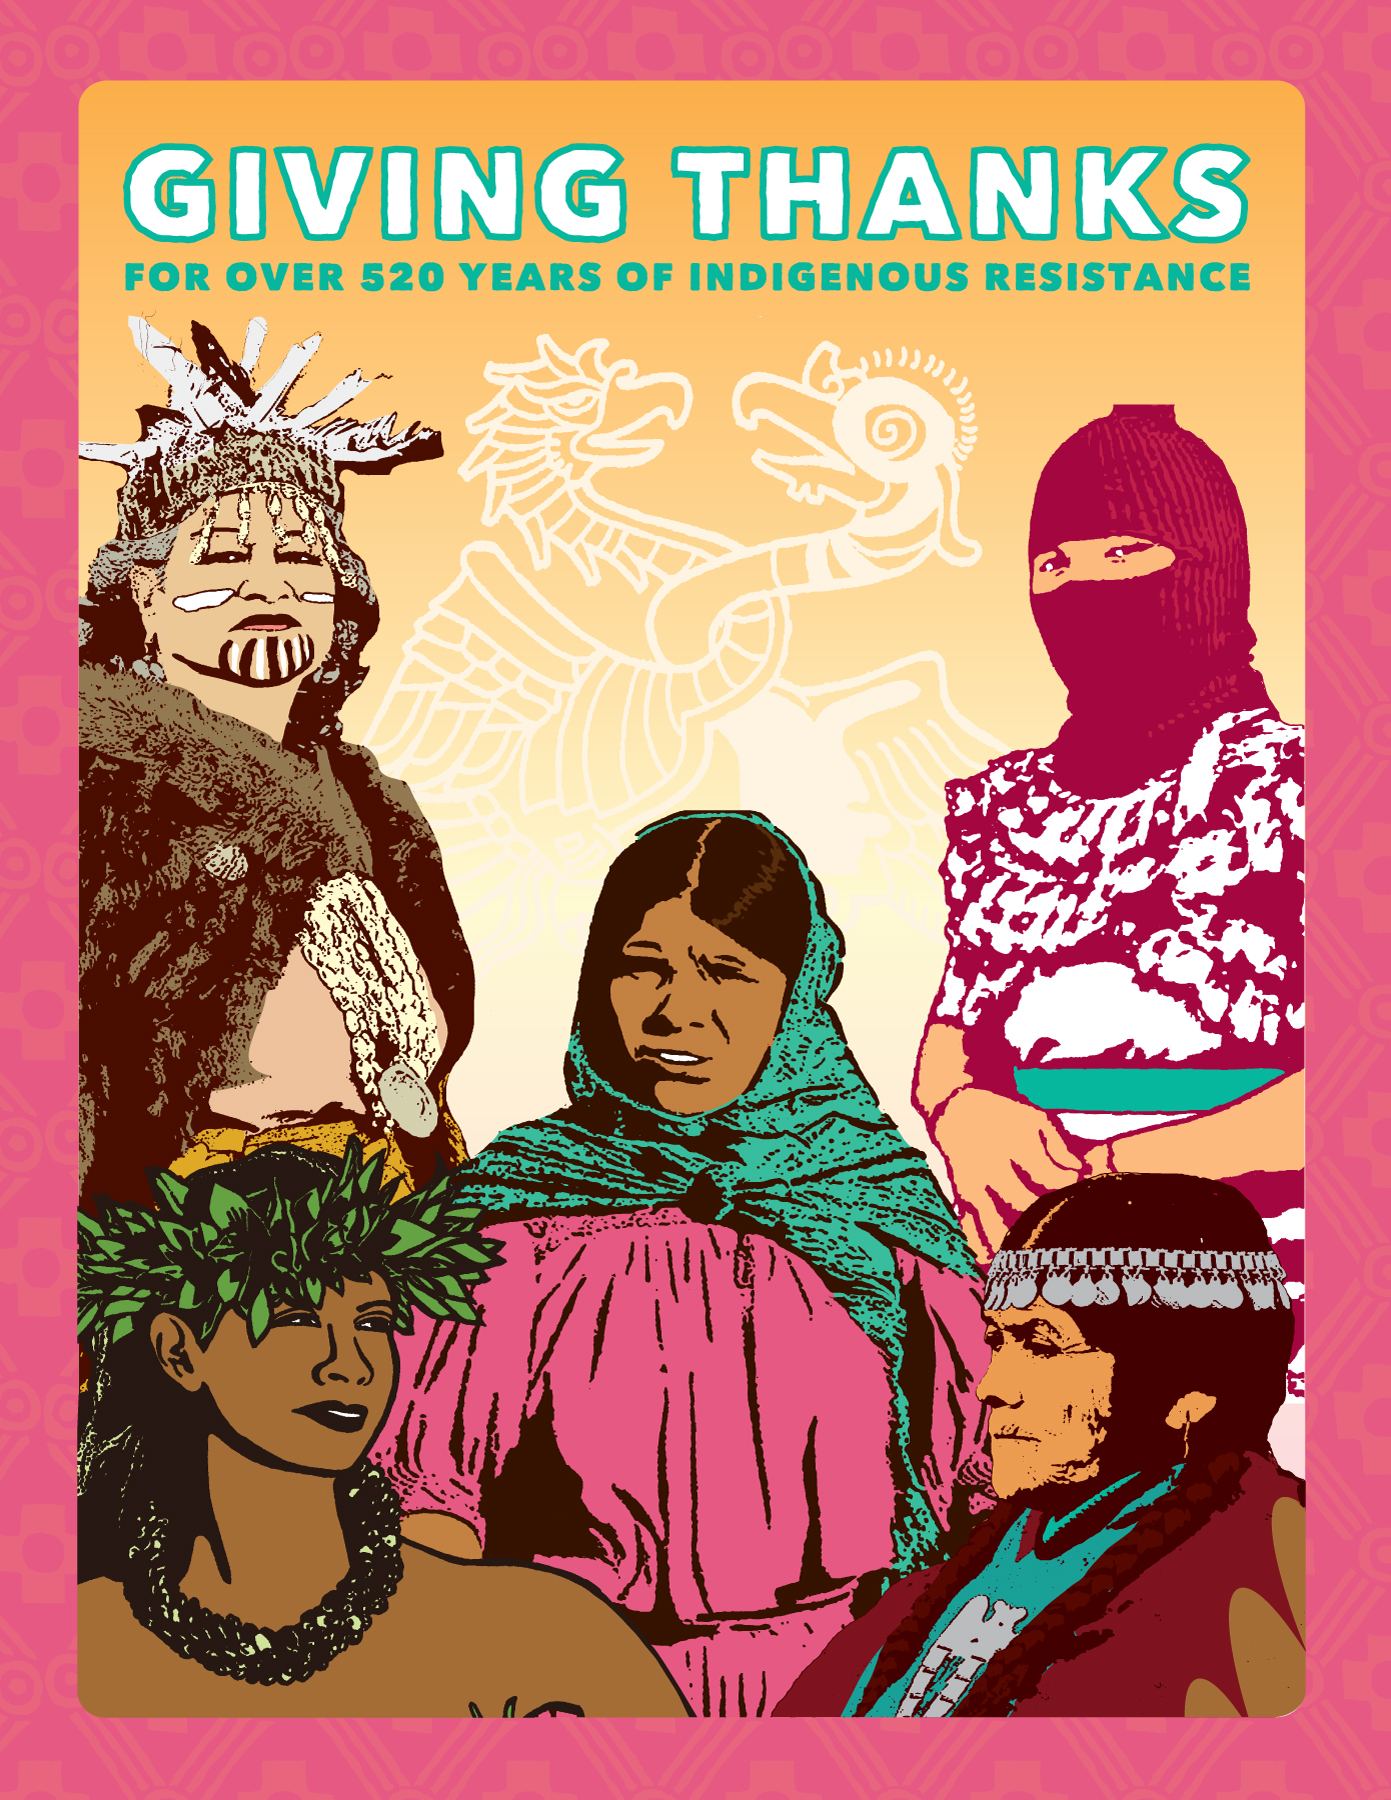 Giving thanks for over 520 years of indigenous resistence - work by Melanie Cervantes of Dignidad Rebelde